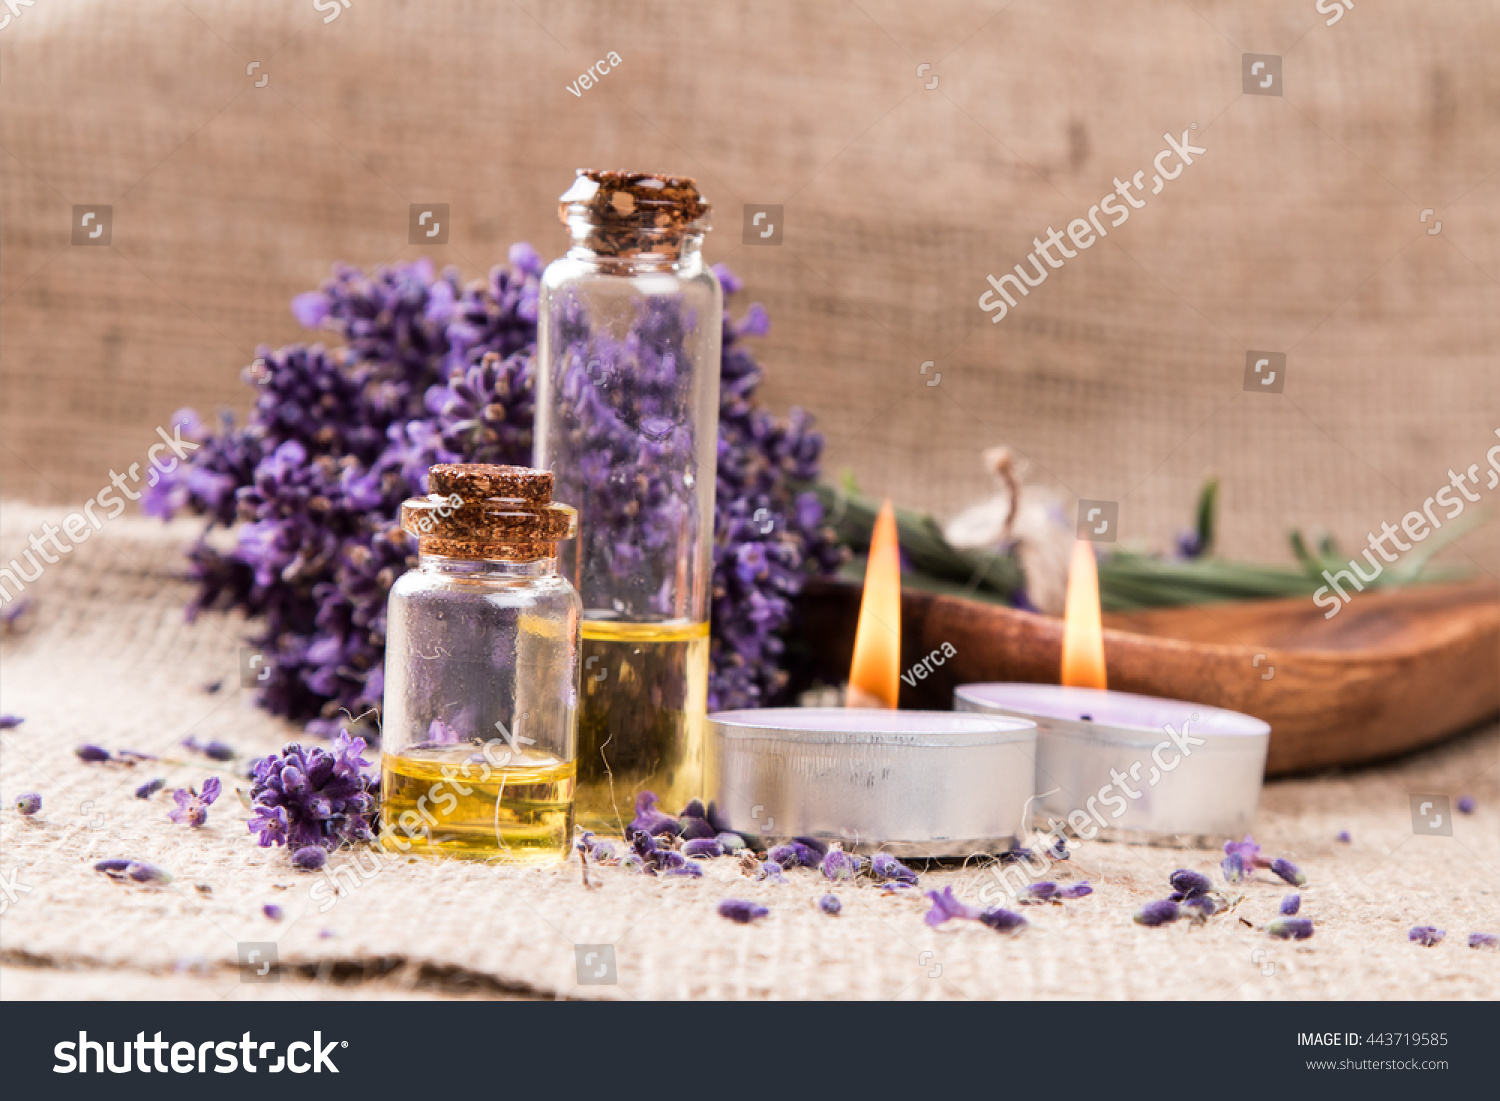 how to make flower essential oils